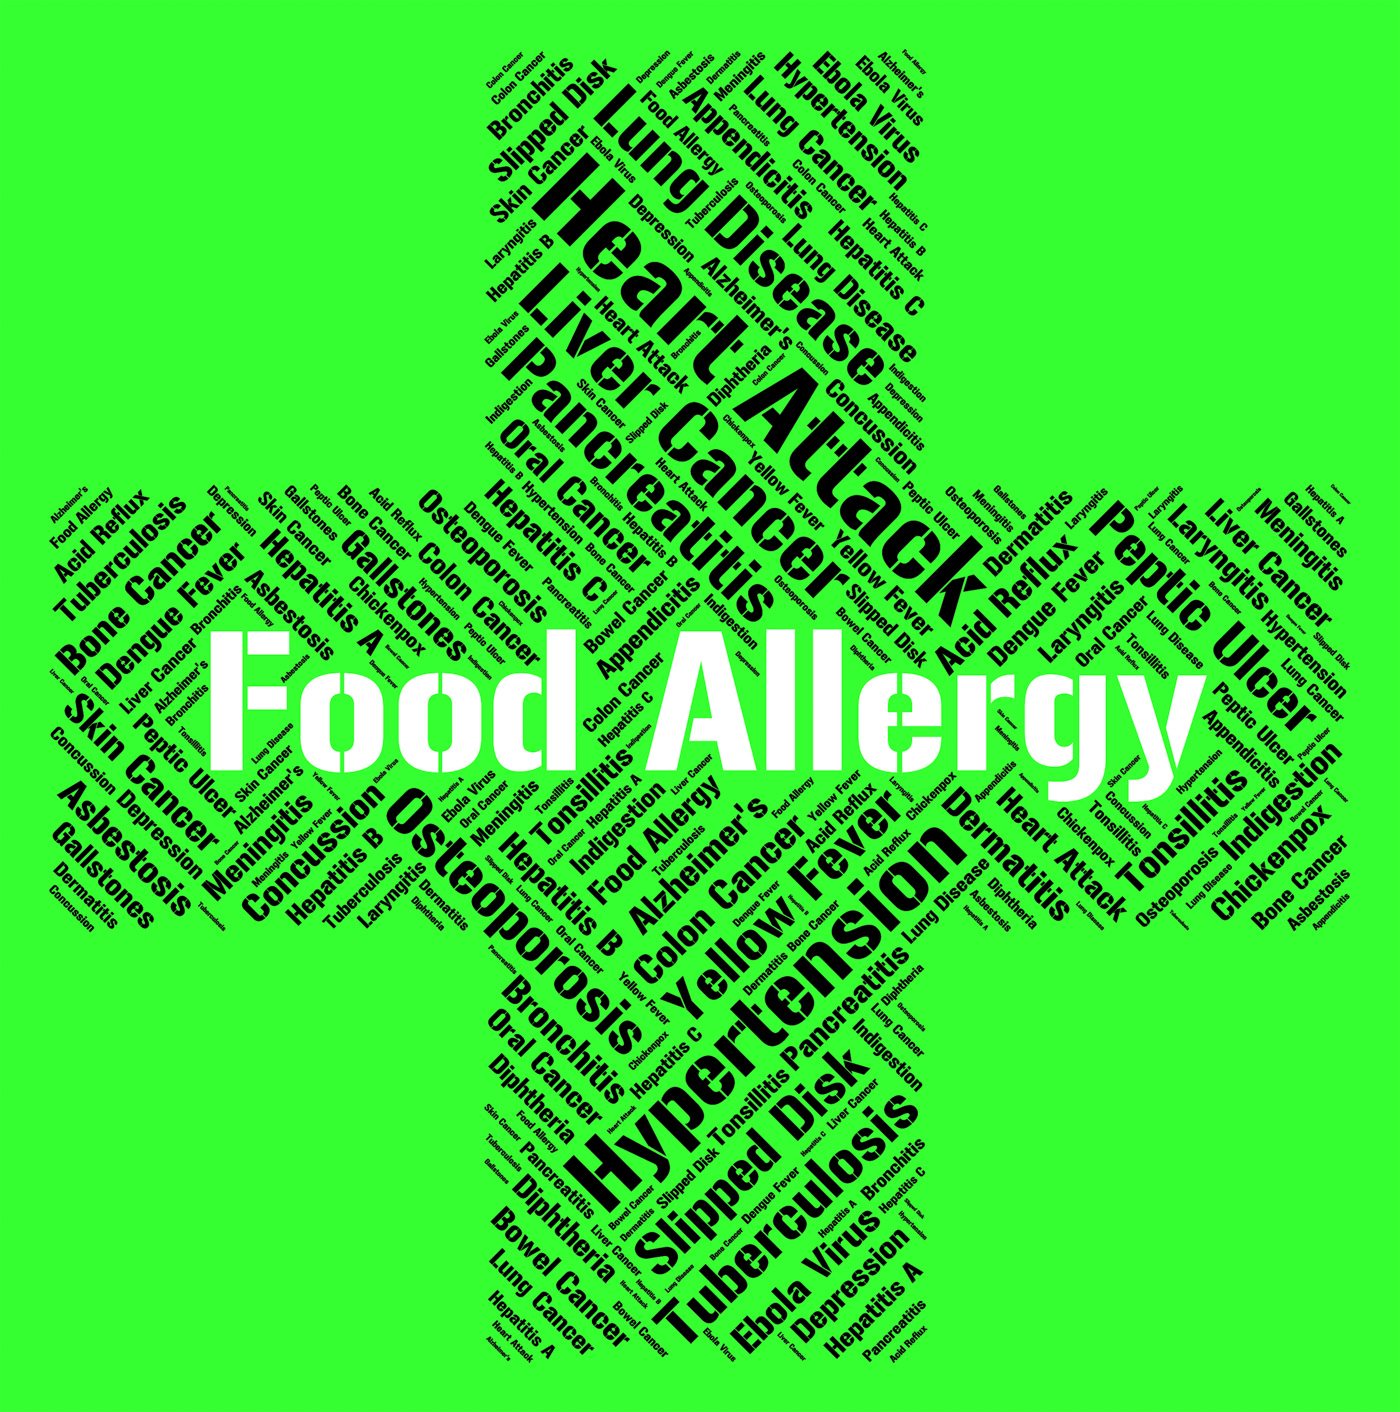 Food allergy represents hay fever and ailment photo